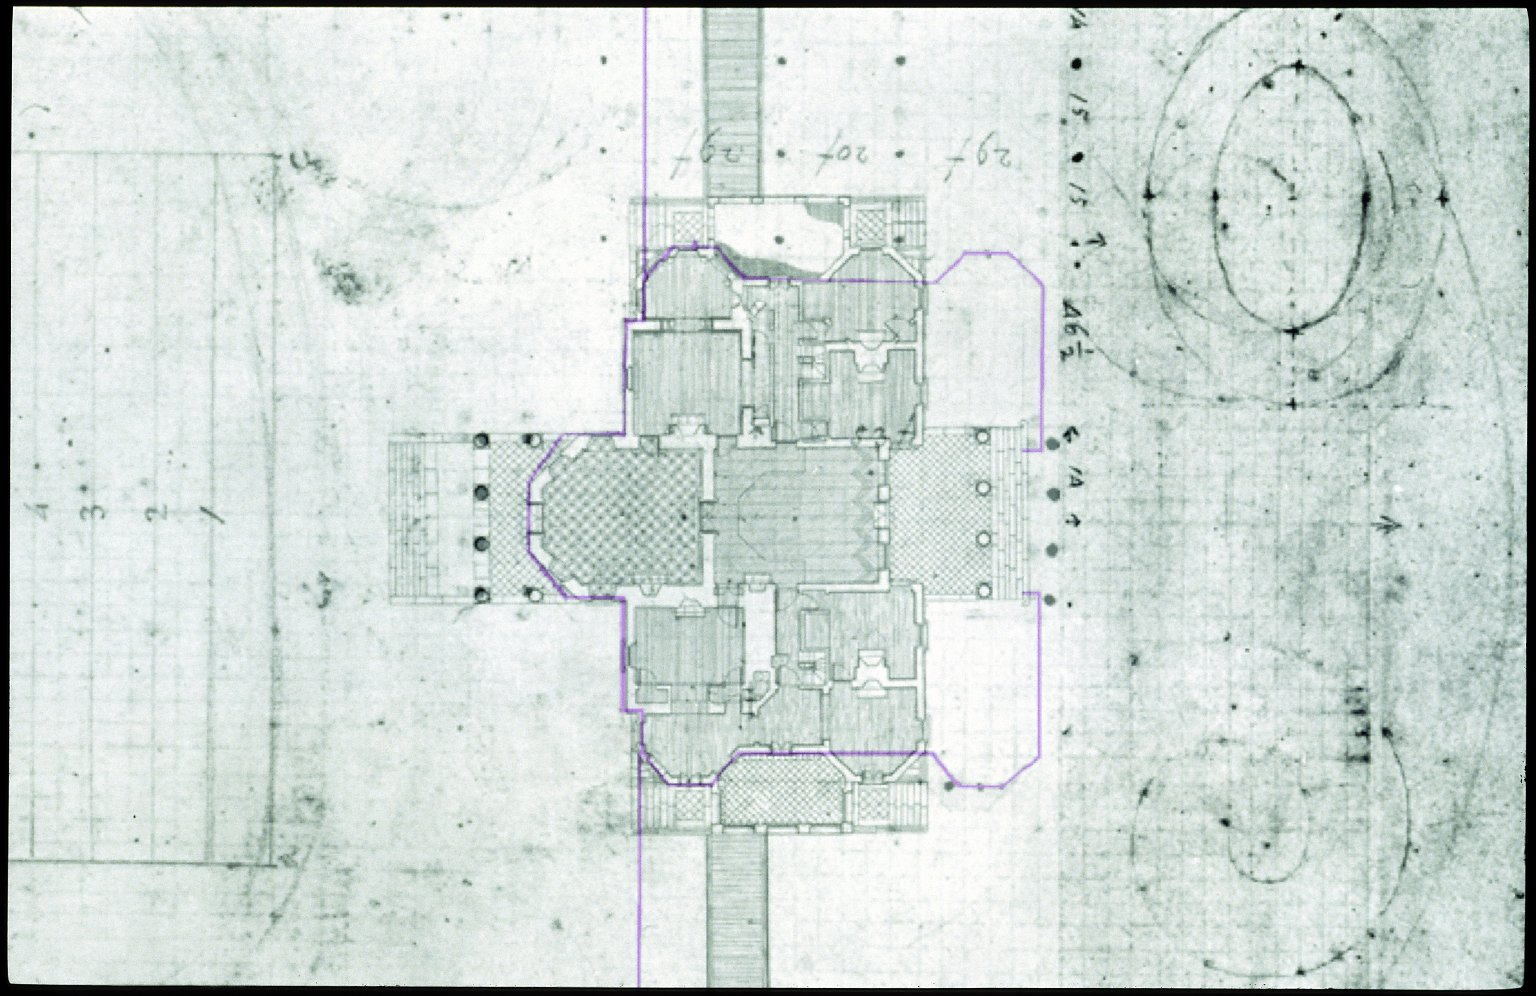 Monticello, house and grounds study superimposed on HABS plan for house and terraces, detail